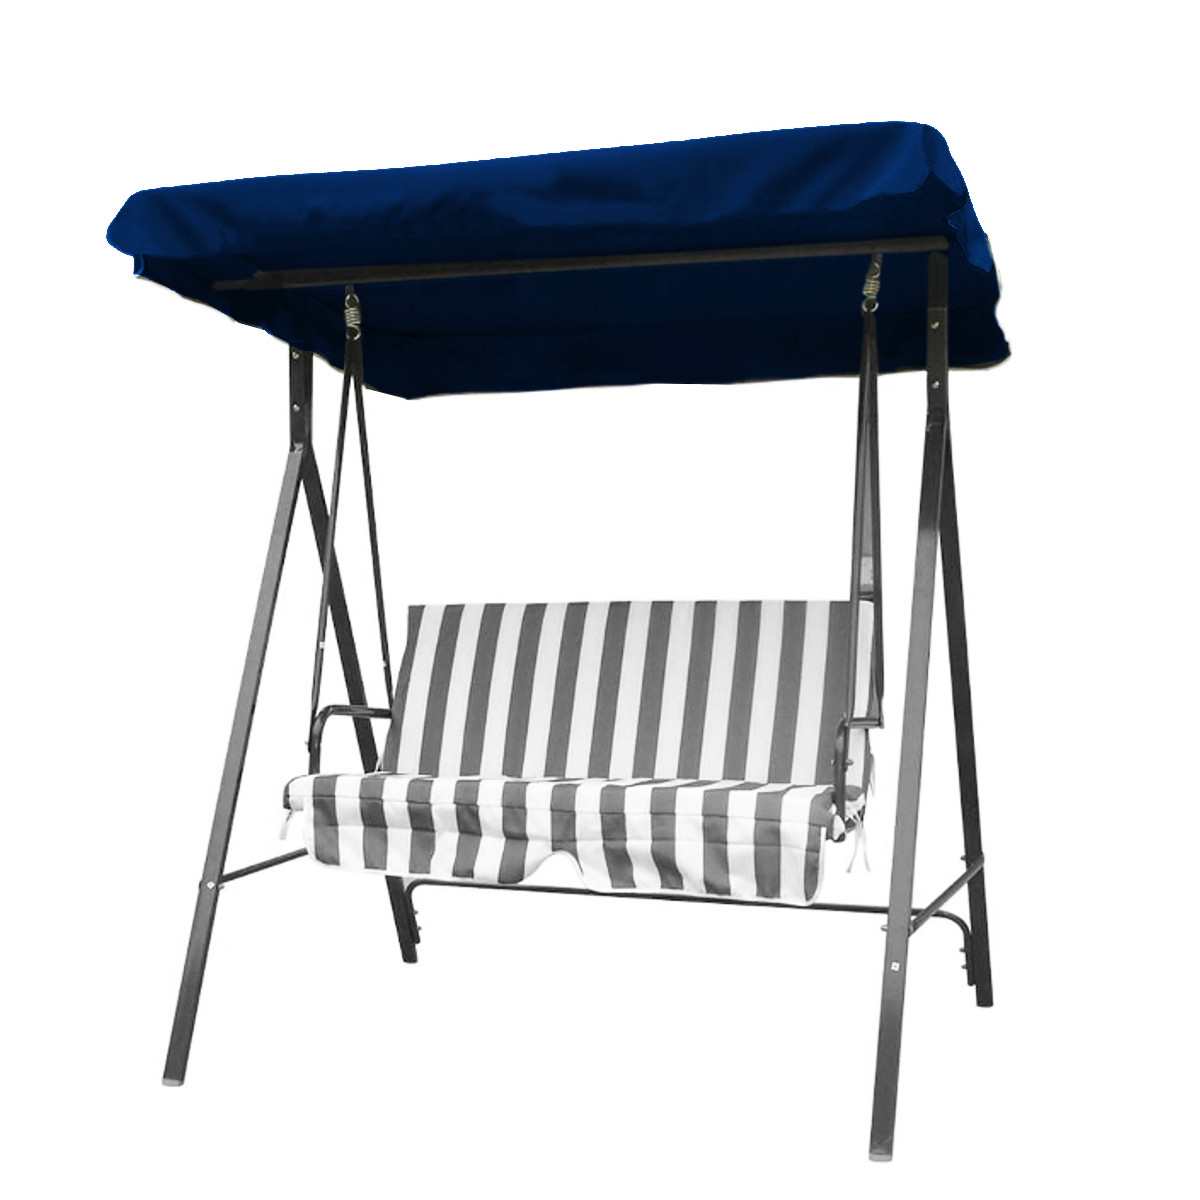 2 3 Seaters Replacement Canopy Spare Cover Anti Uv For